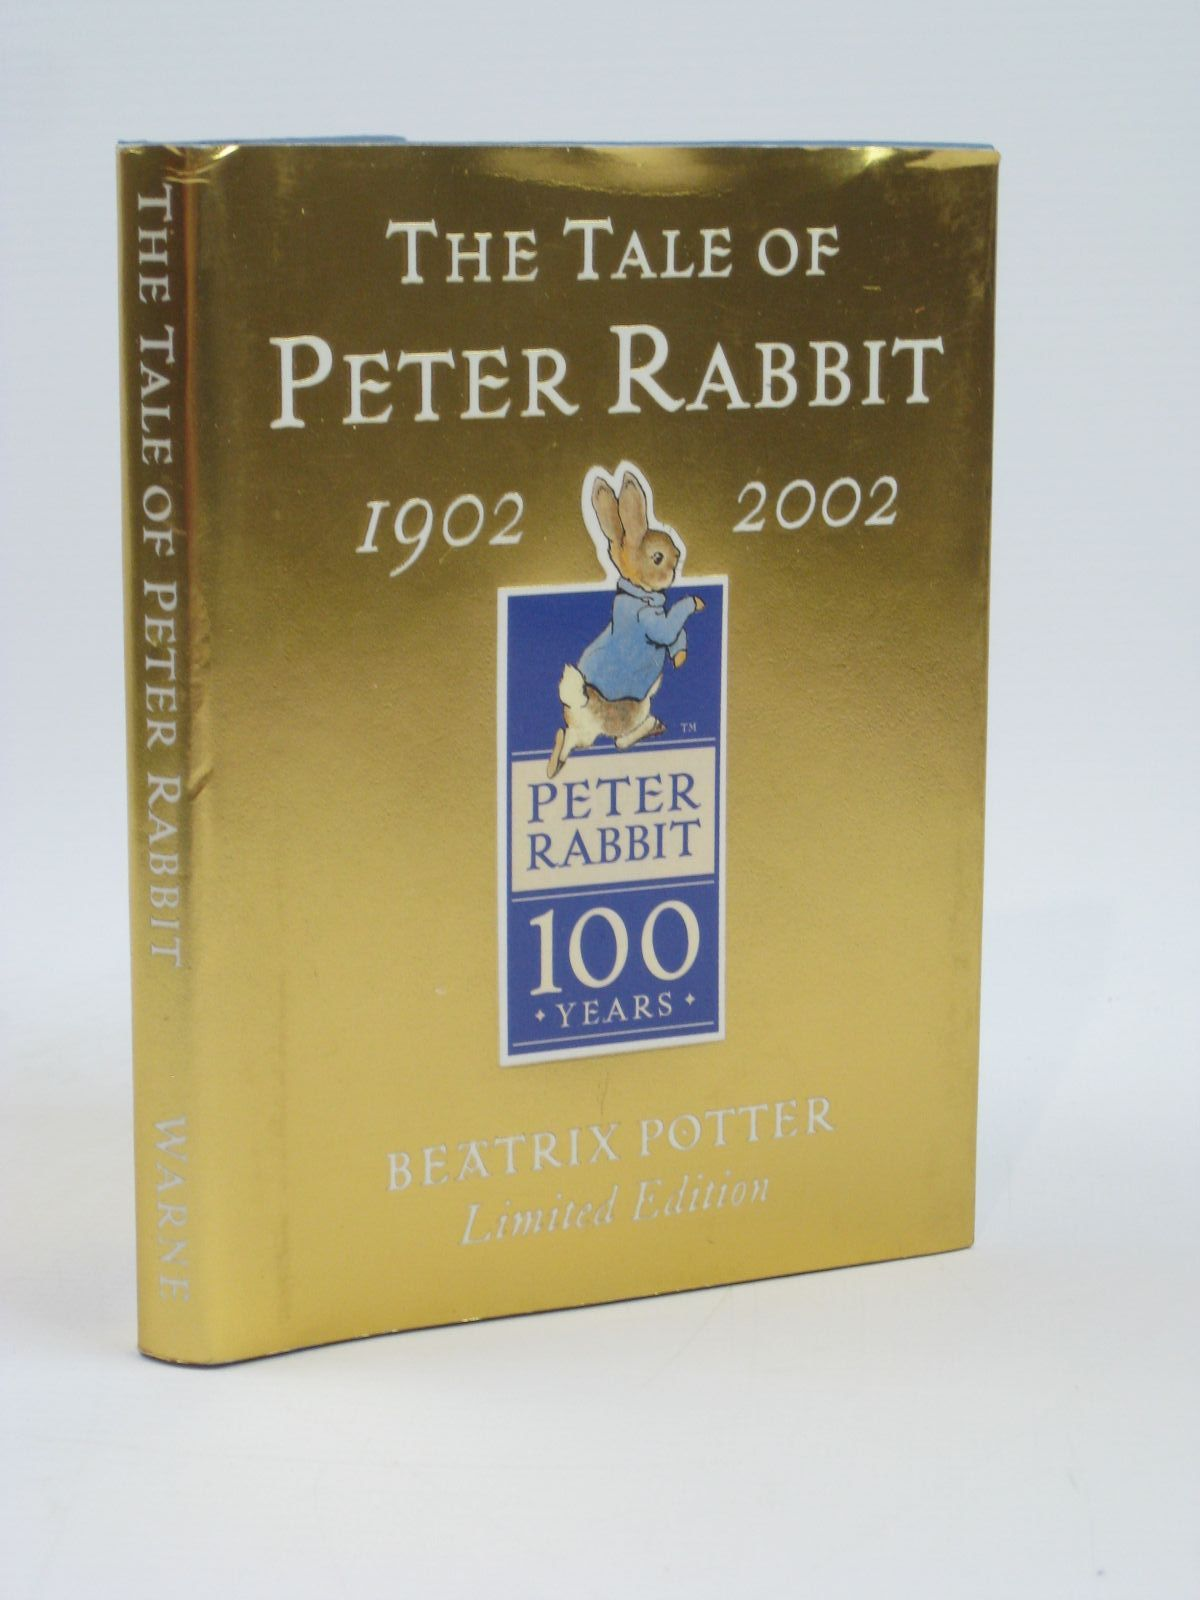 Photo of THE TALE OF PETER RABBIT written by Potter, Beatrix illustrated by Potter, Beatrix published by Frederick Warne (Publishers) Ltd. (STOCK CODE: 1316352)  for sale by Stella & Rose's Books